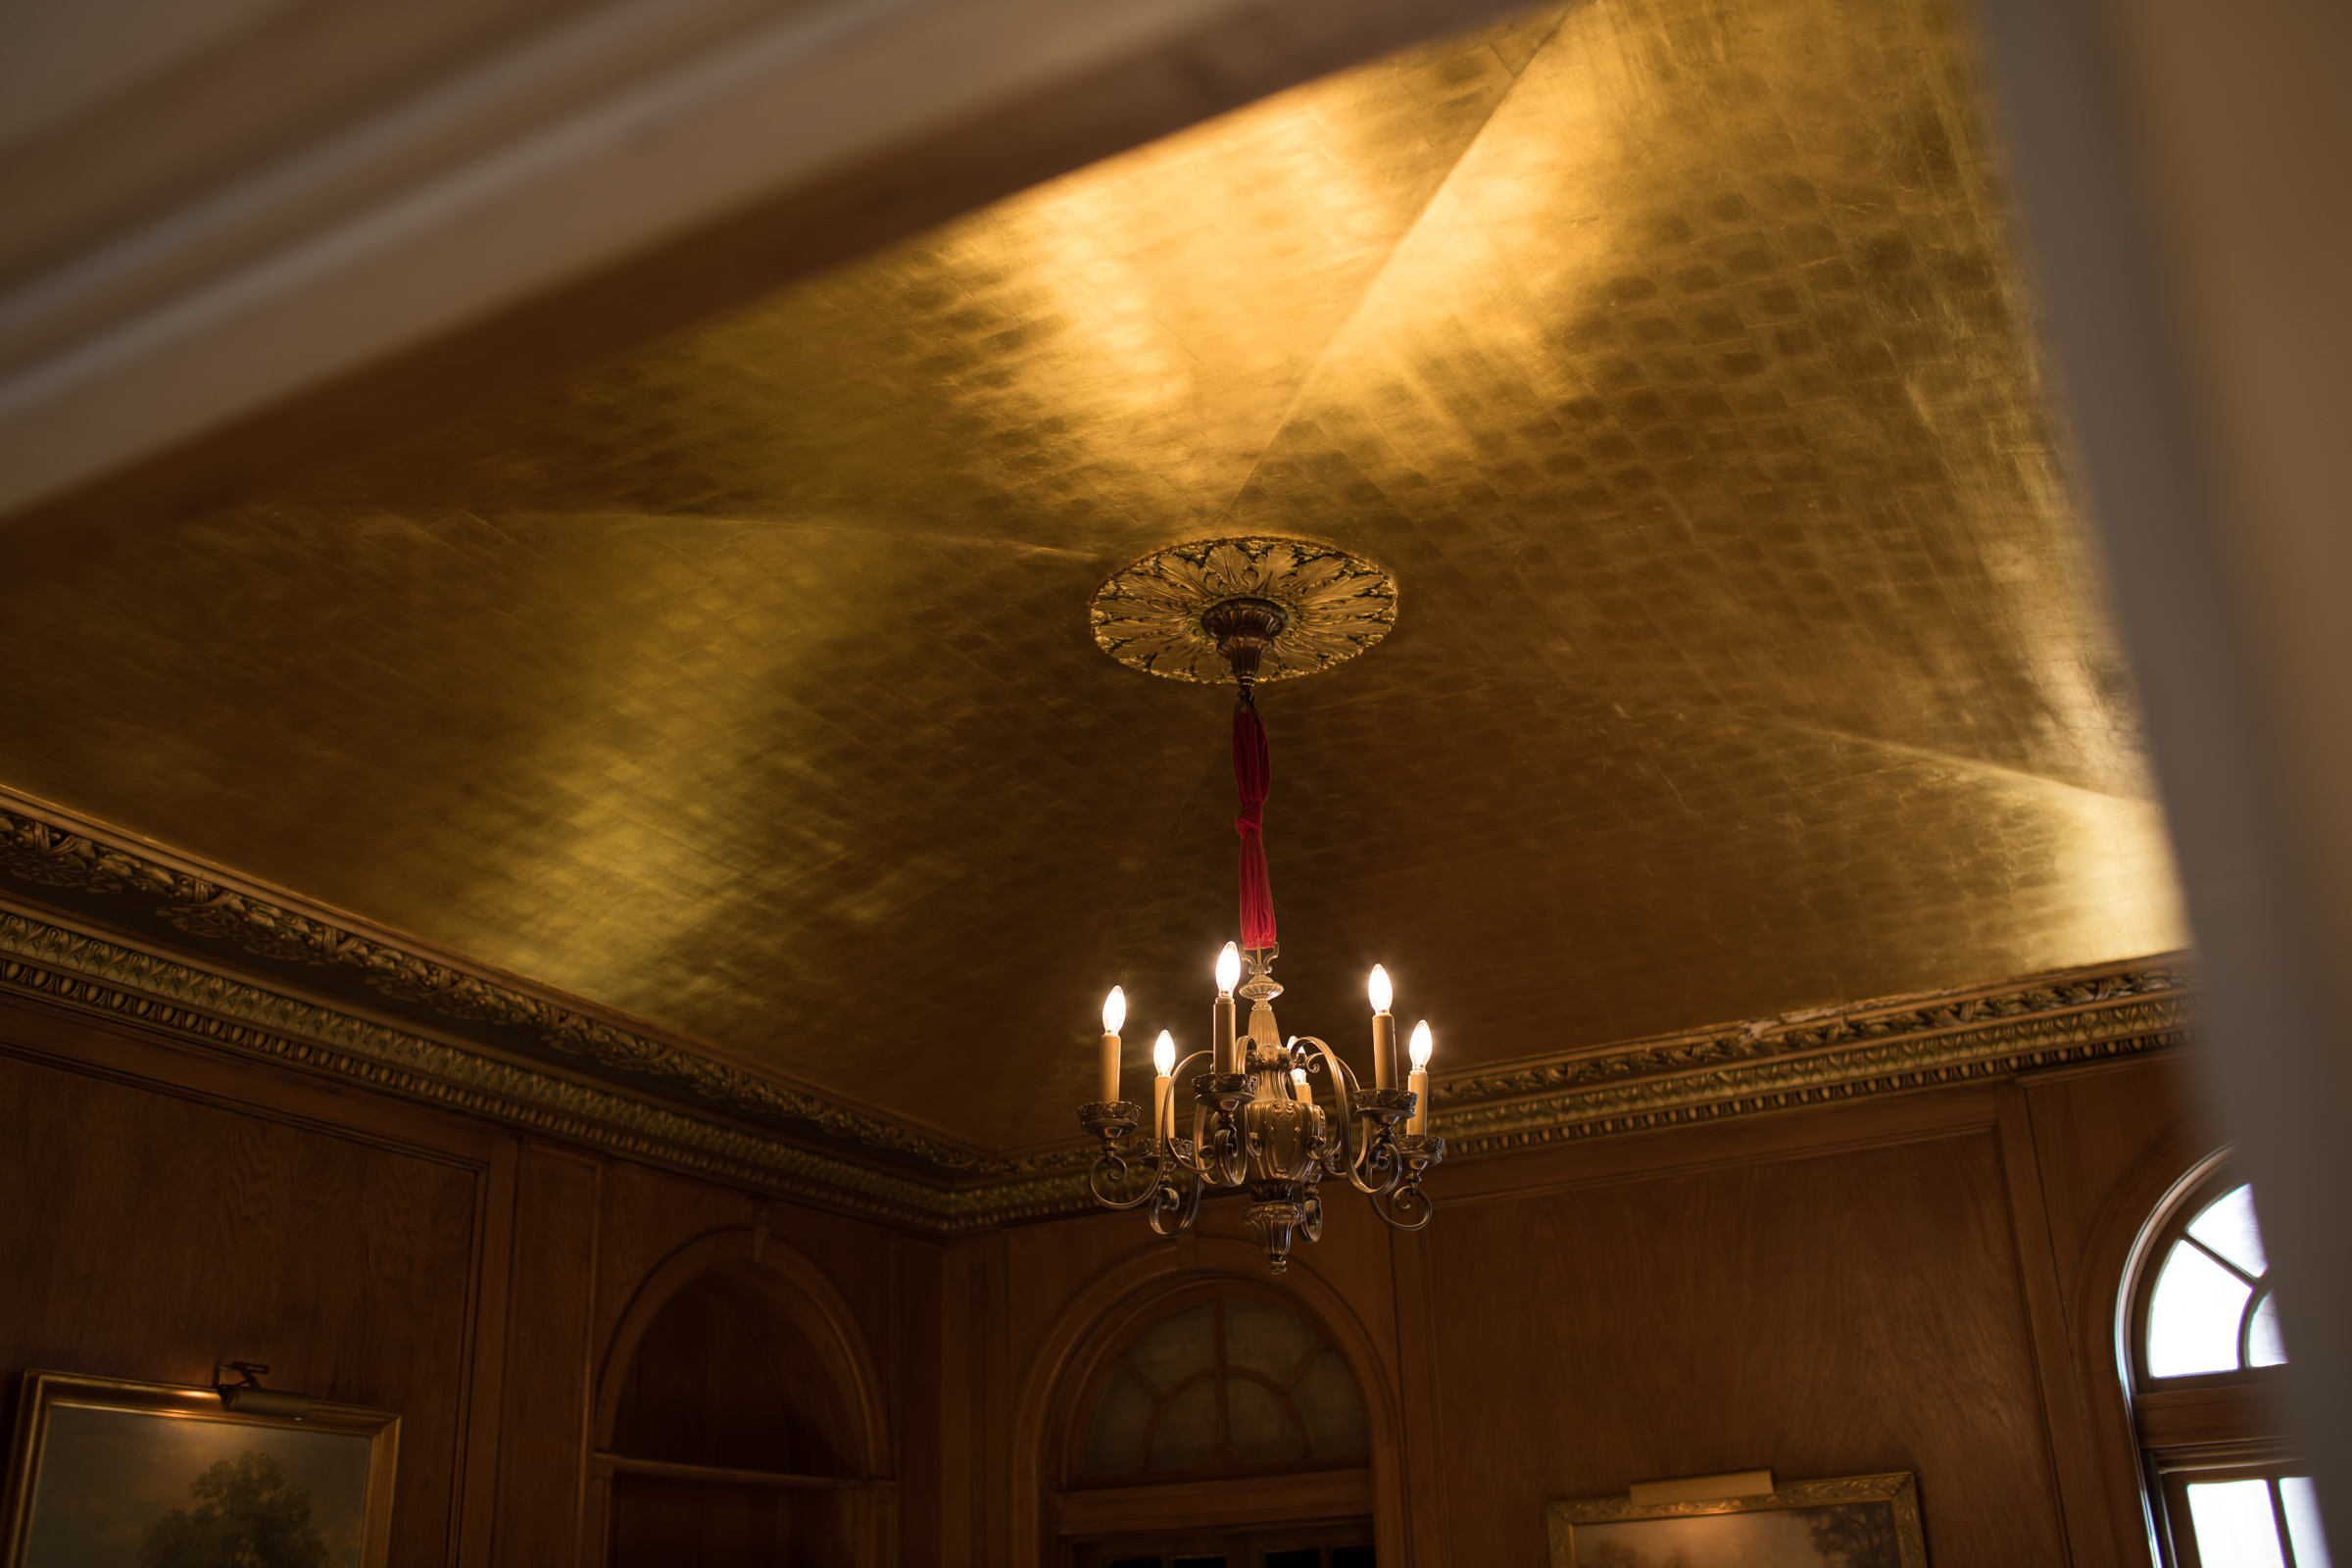 The Gold Room ceiling.